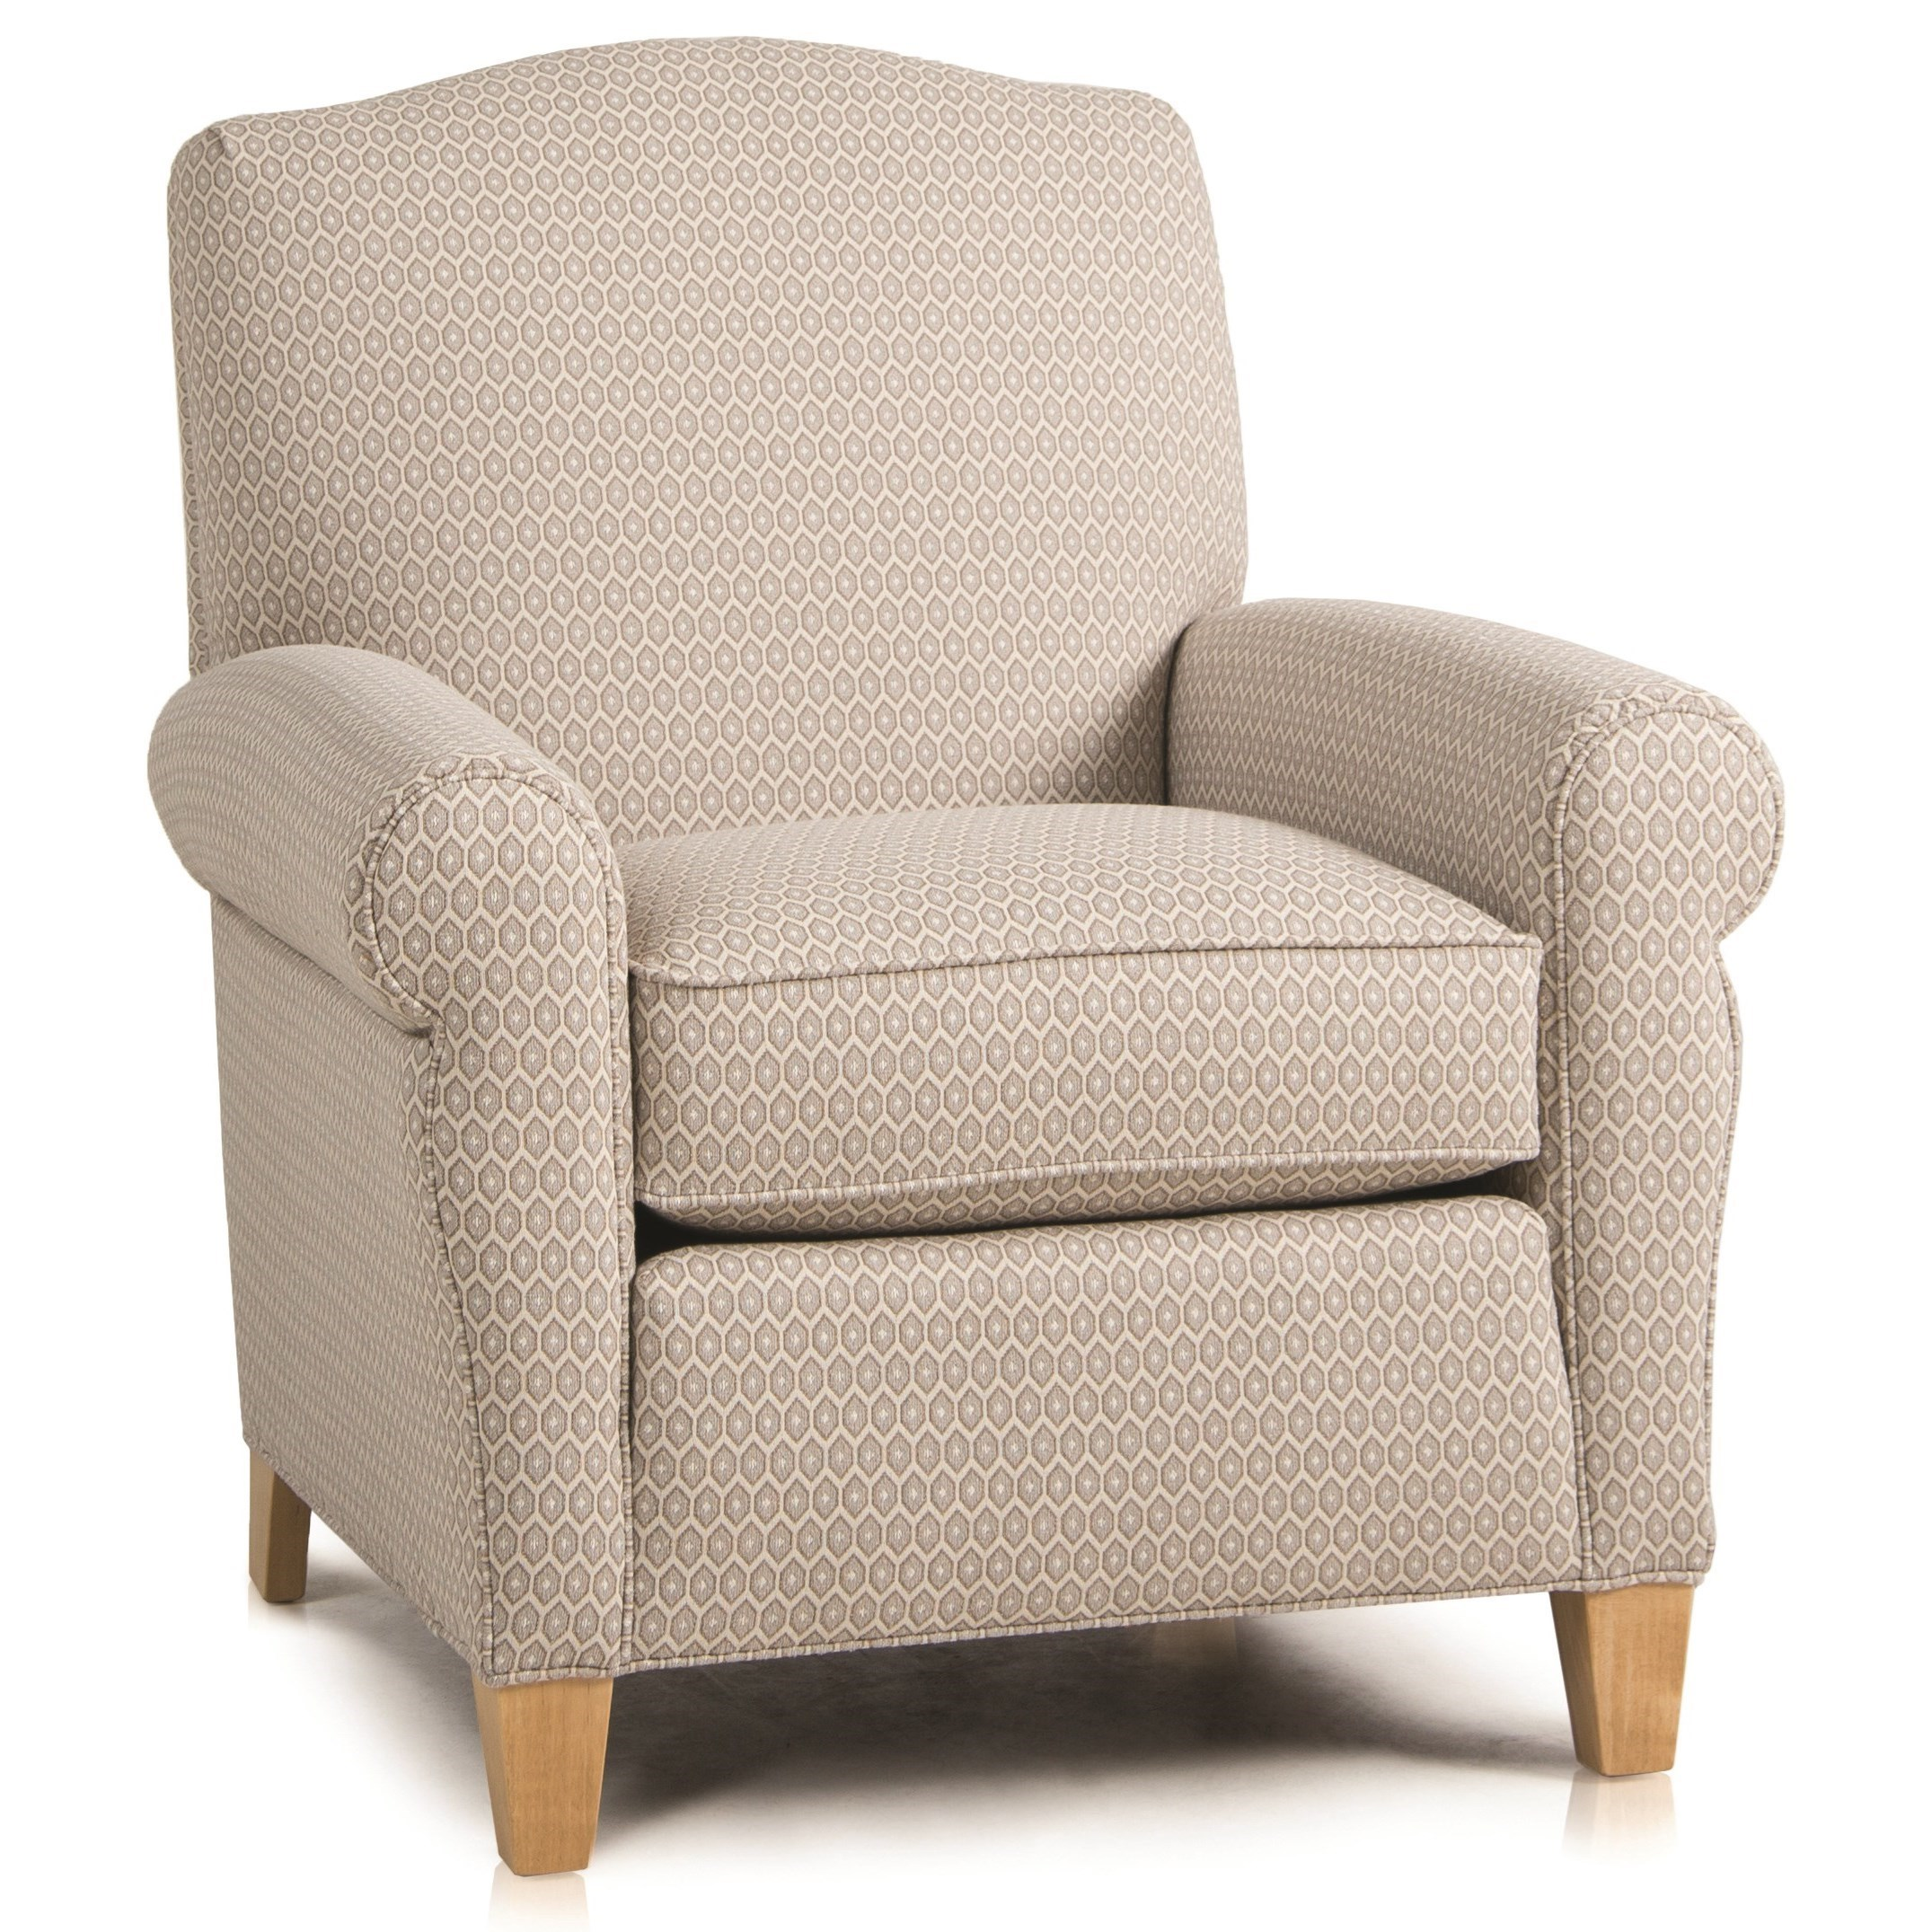 Upholstered Chair w/ Rolled Arms